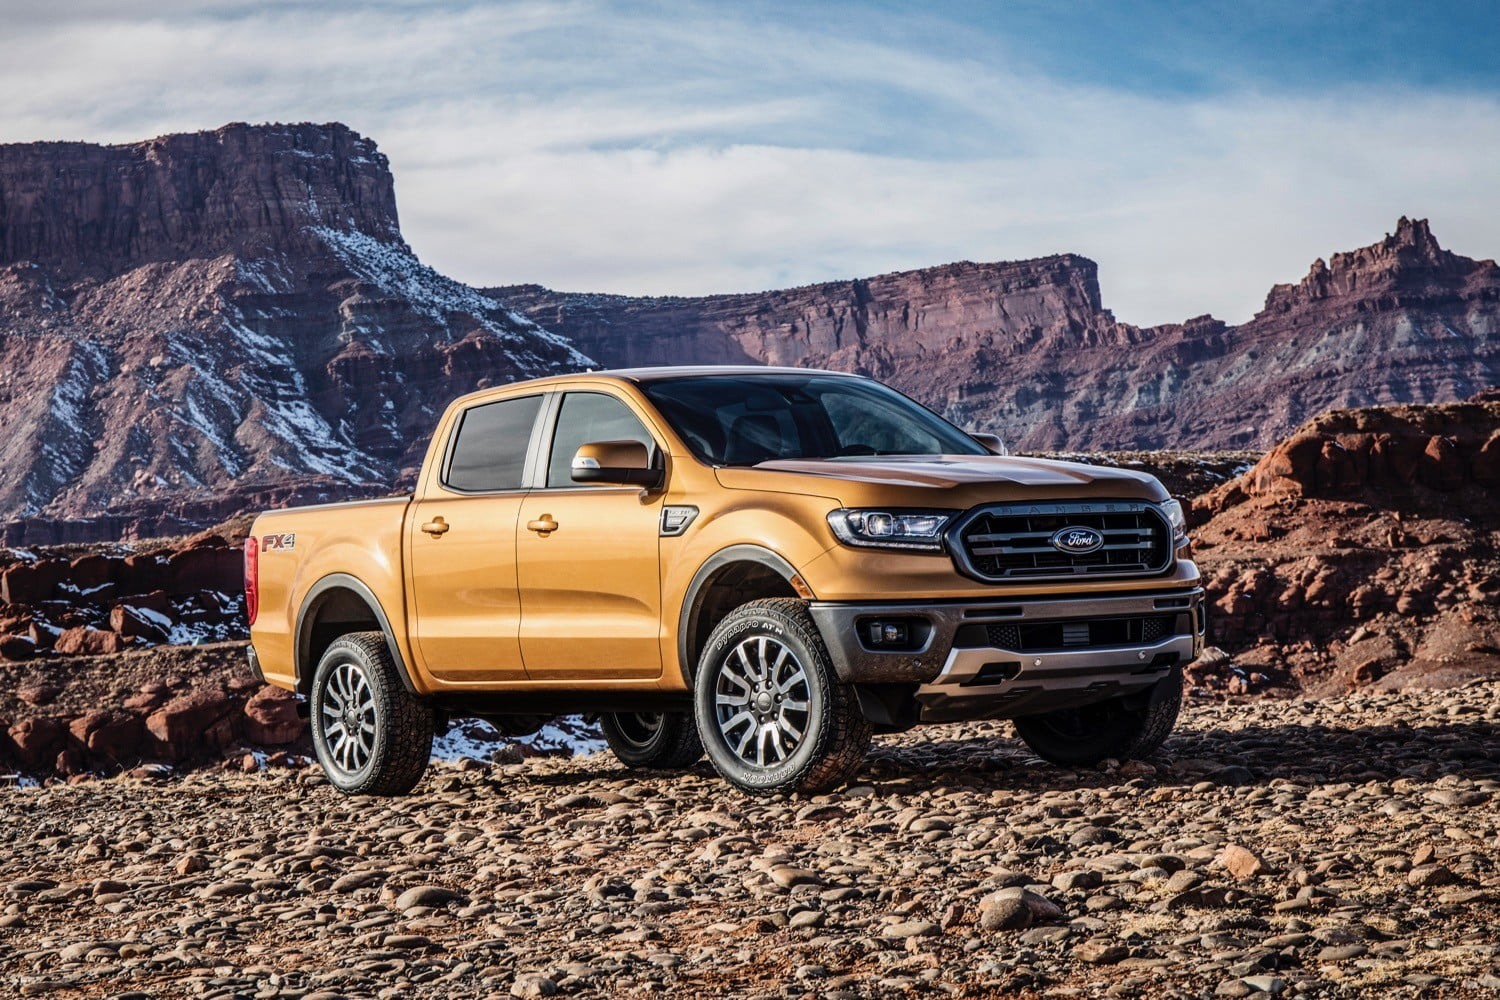 2019 Ford Ranger Tries To Match V6 Muscle With Four